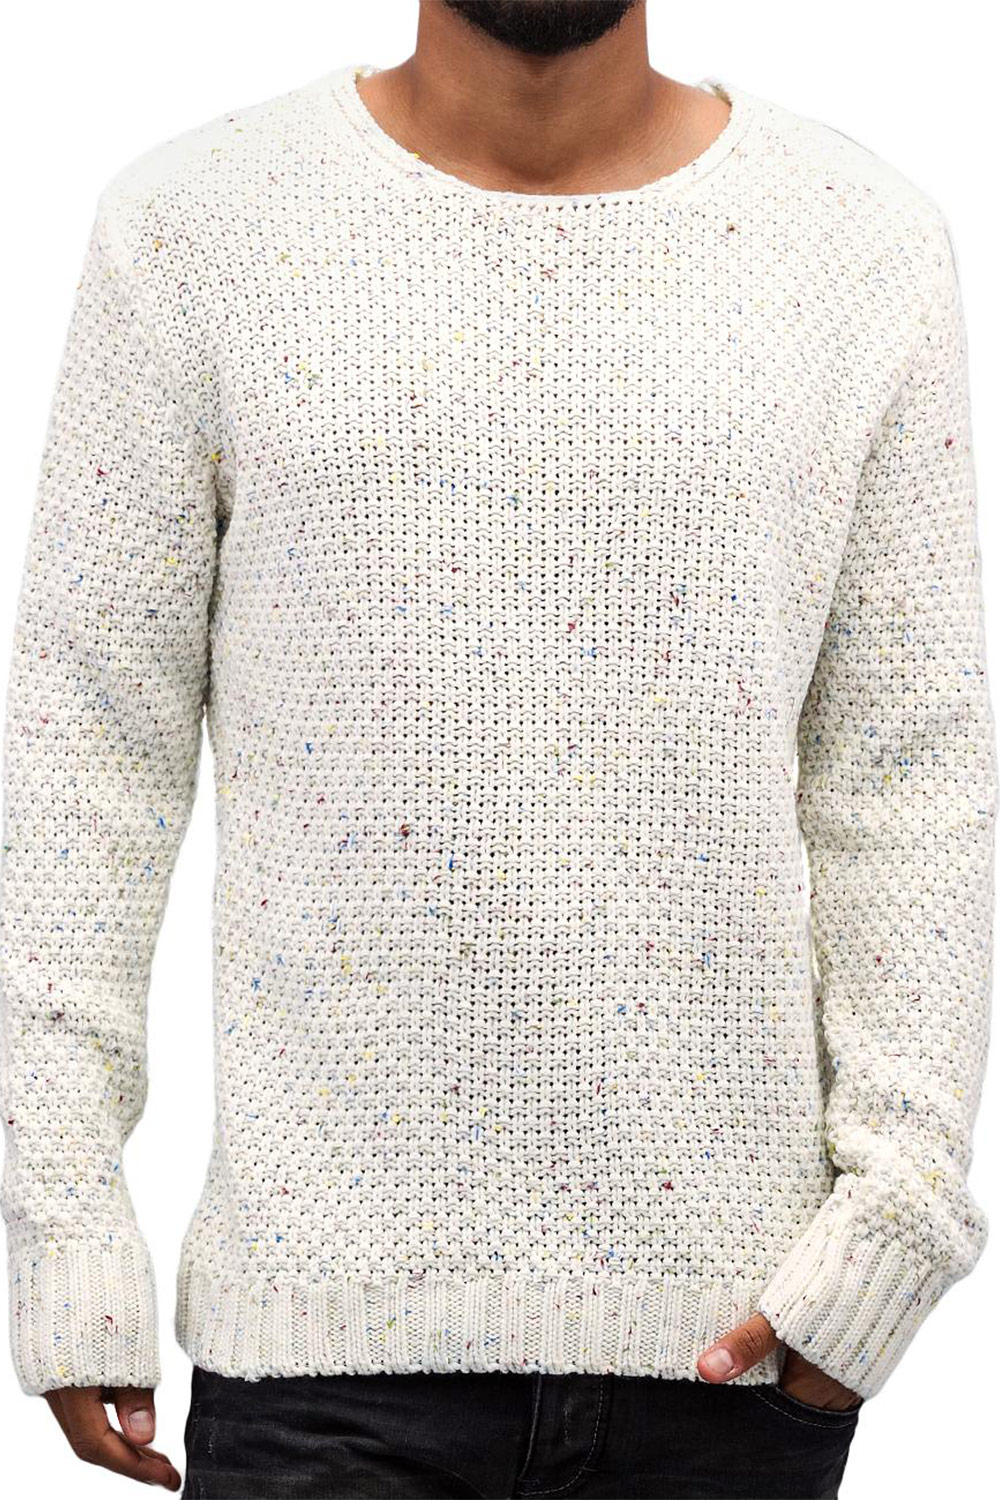 JUST RHYSE Soft Knit Sweatshirt White/Colored auf oboy.de